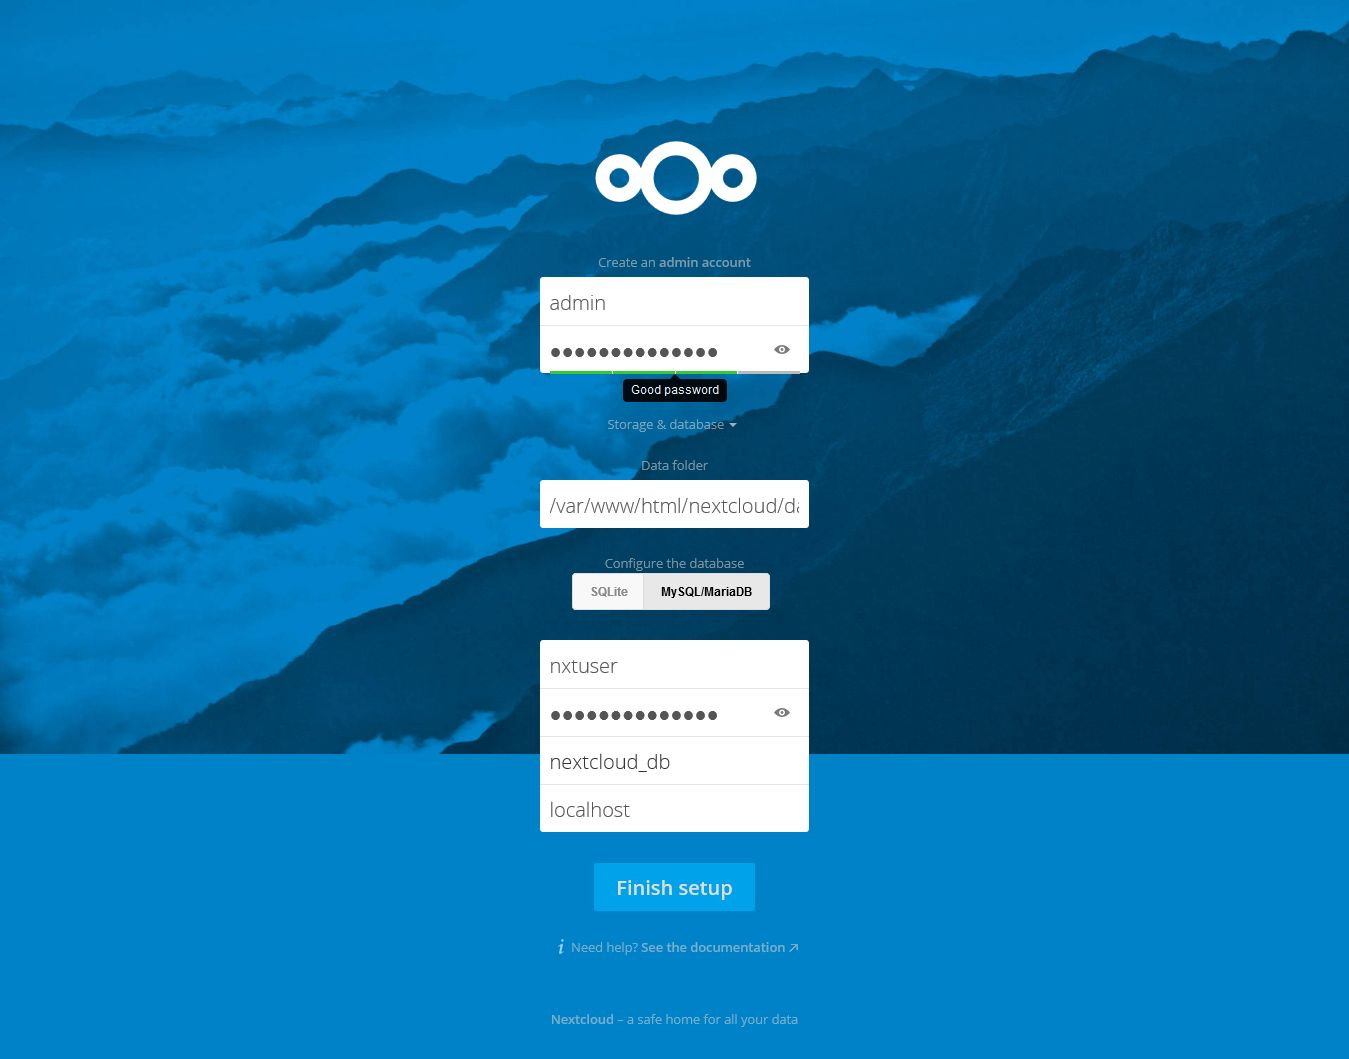 How to Install and Configure Nextcloud on CentOS 7 / RHEL 7